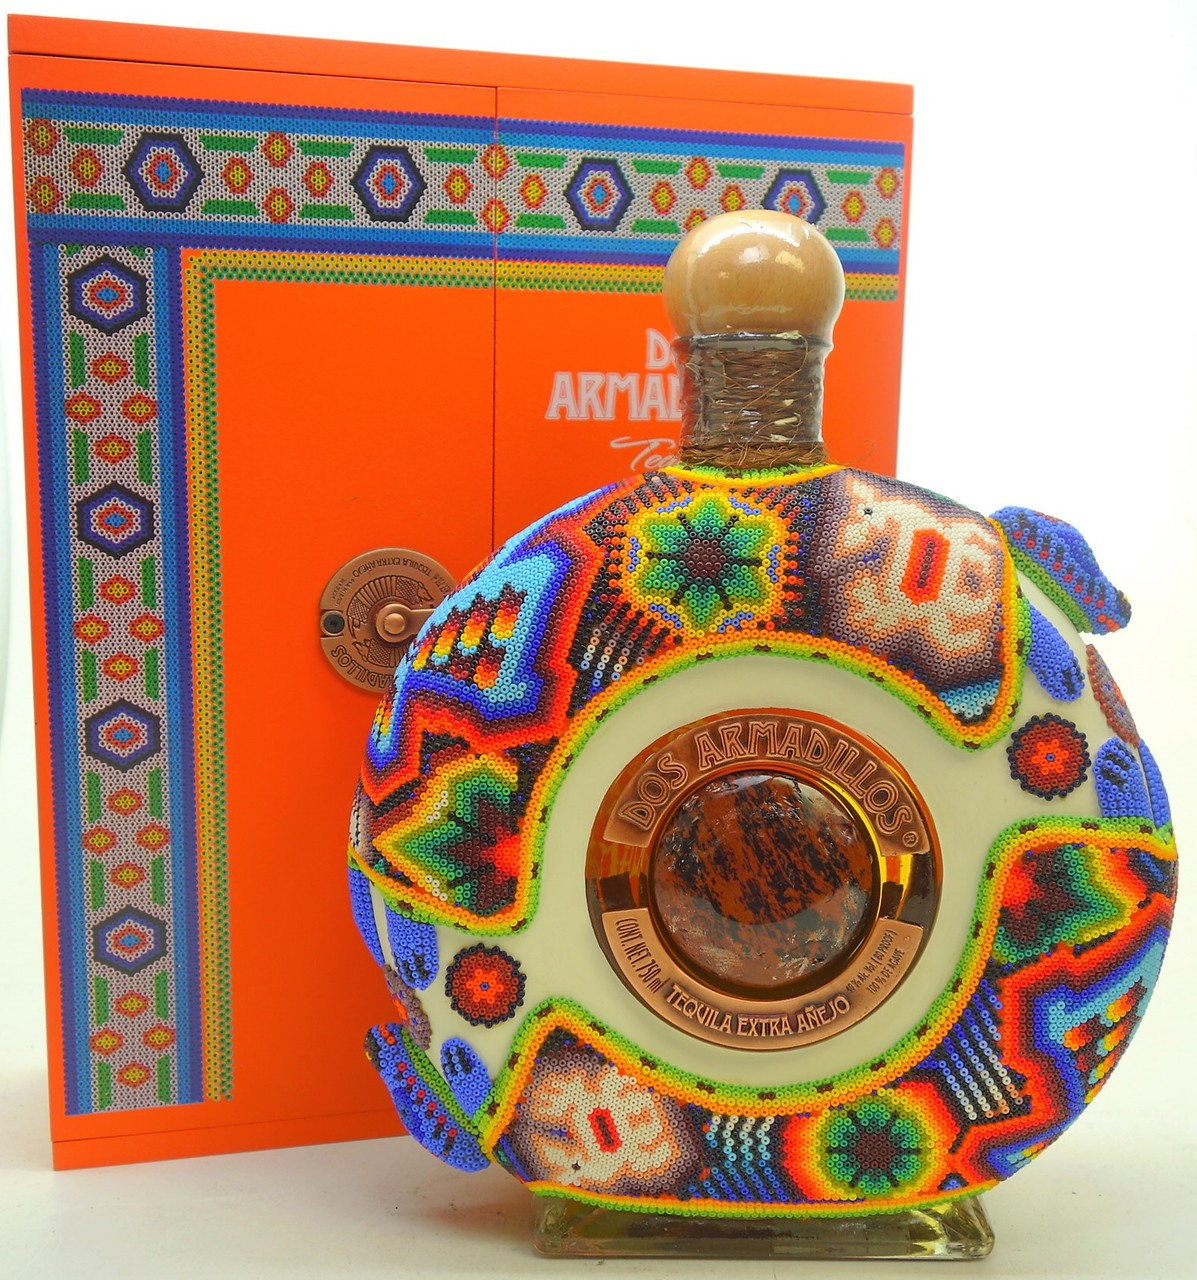 Dos Armadillos Oaxaca artist Edition Bead Orange Box